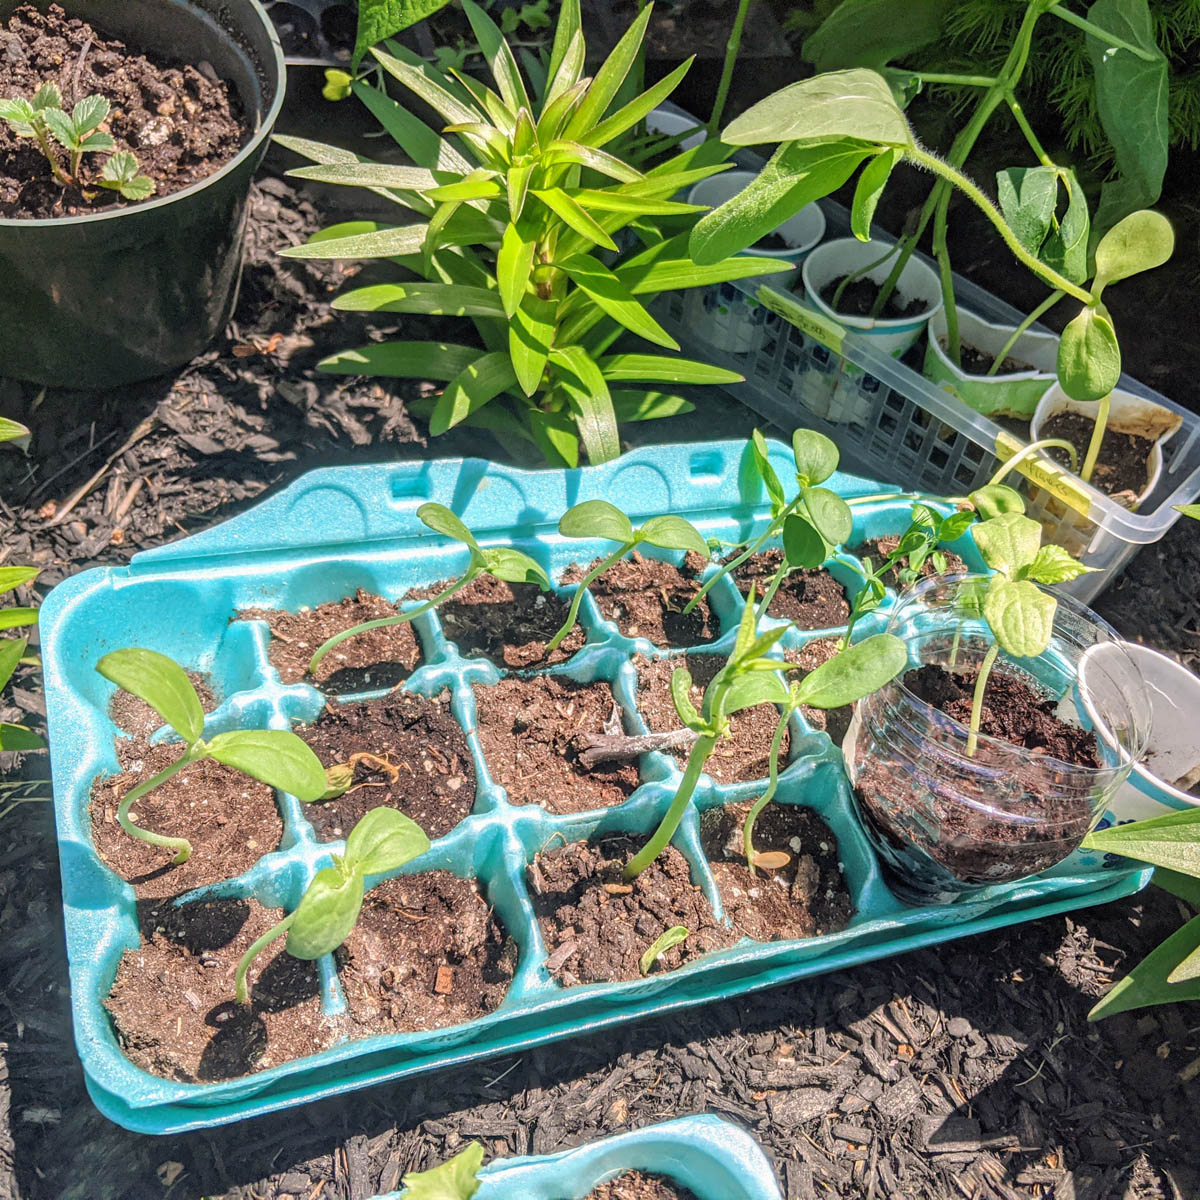 Underwatered plants in an egg carton show lighter colored soil